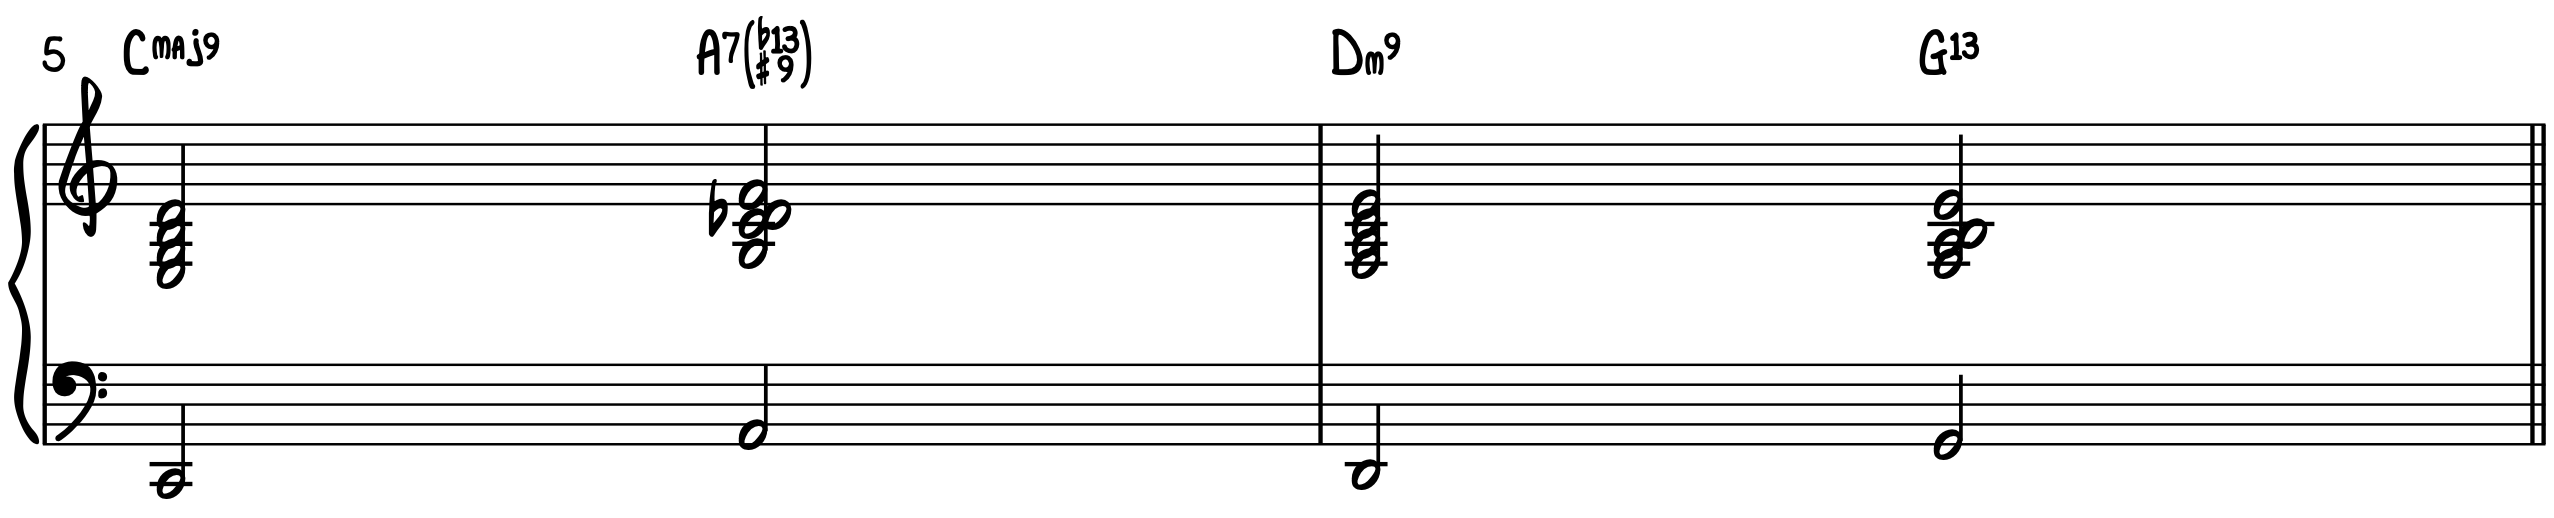 The Turnaround Progression with Rootless voicings jazz piano accompaniment